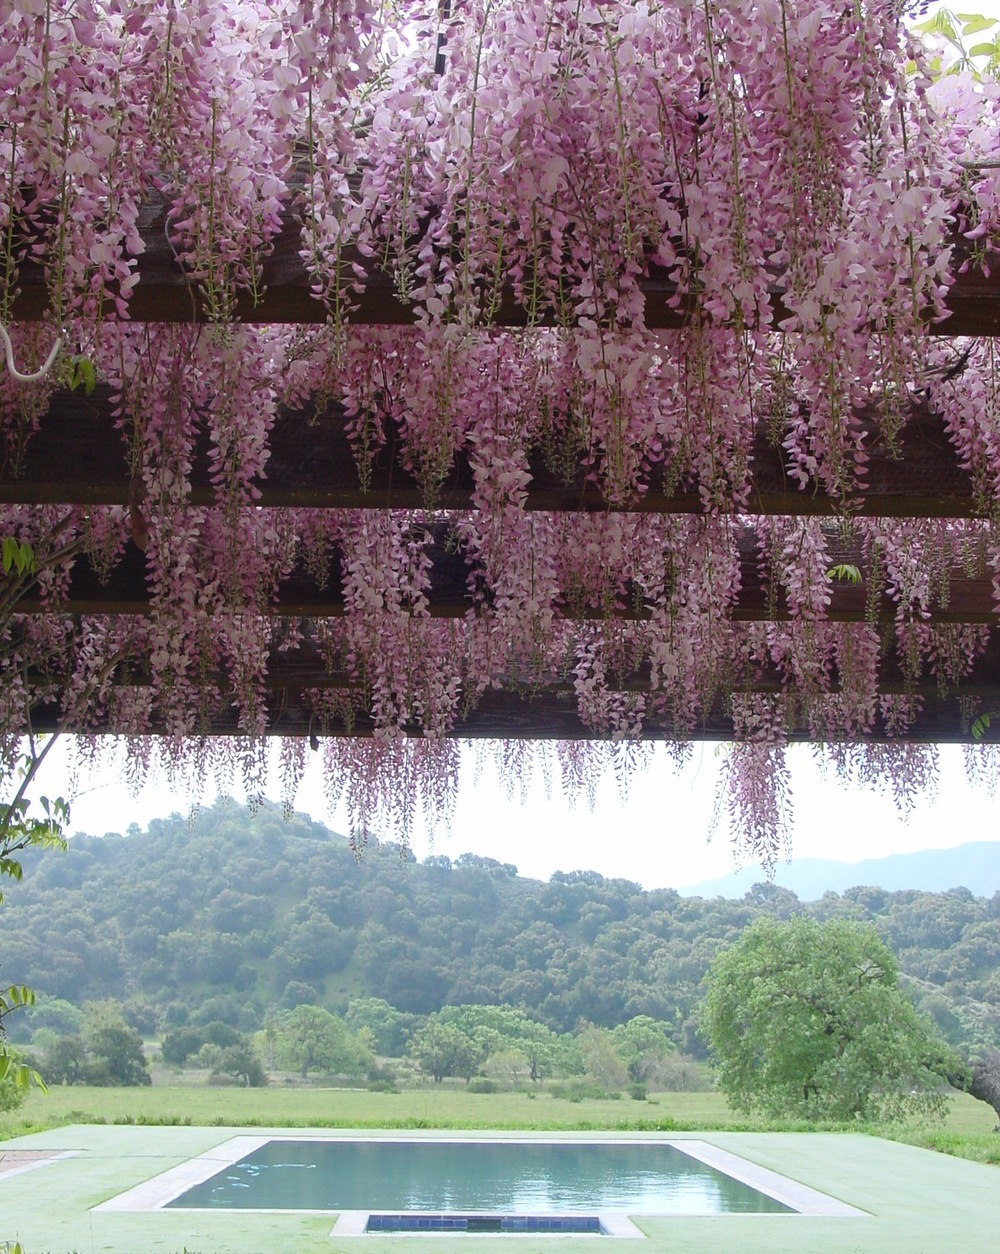 Pink Wisteria grows over the Breakfast Room Terrace in a view overlooking the pool and spa.